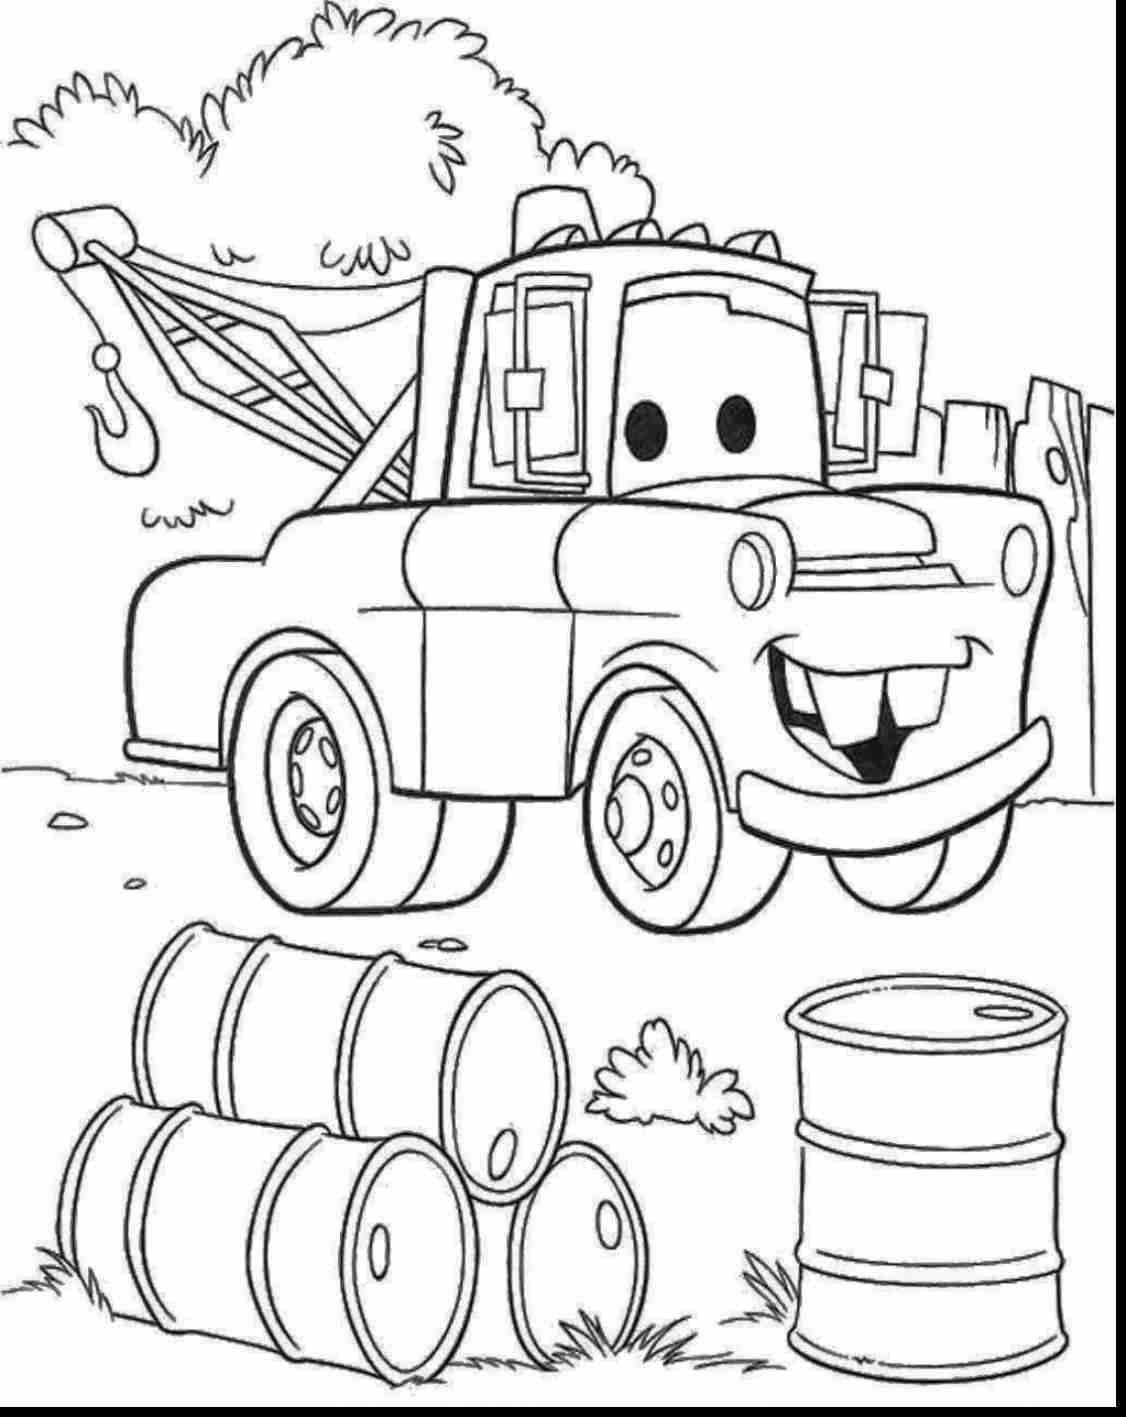 Disney Cars Mater Coloring Pages To Amusing Draw Page Fantastic Ar